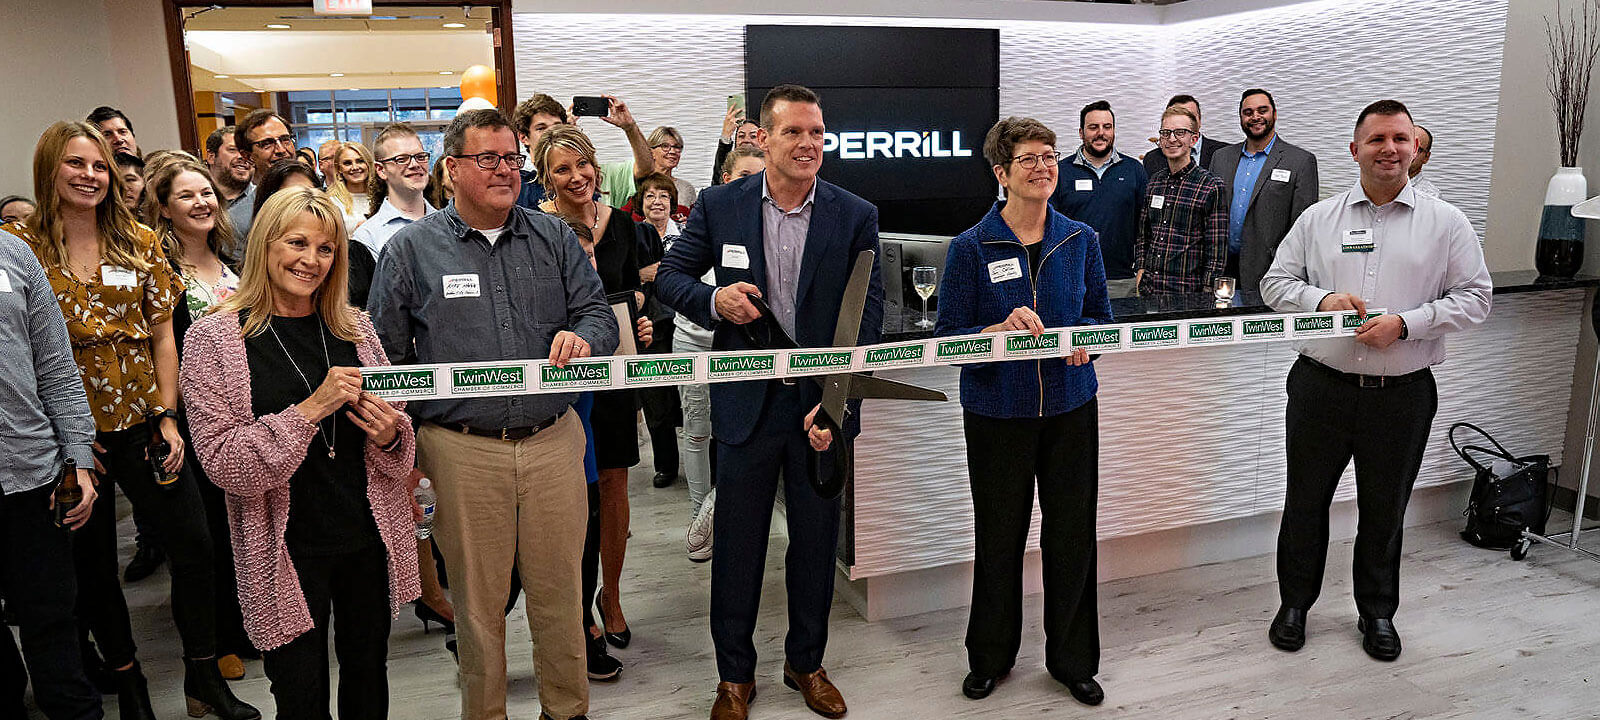 perrill ribbon cutting